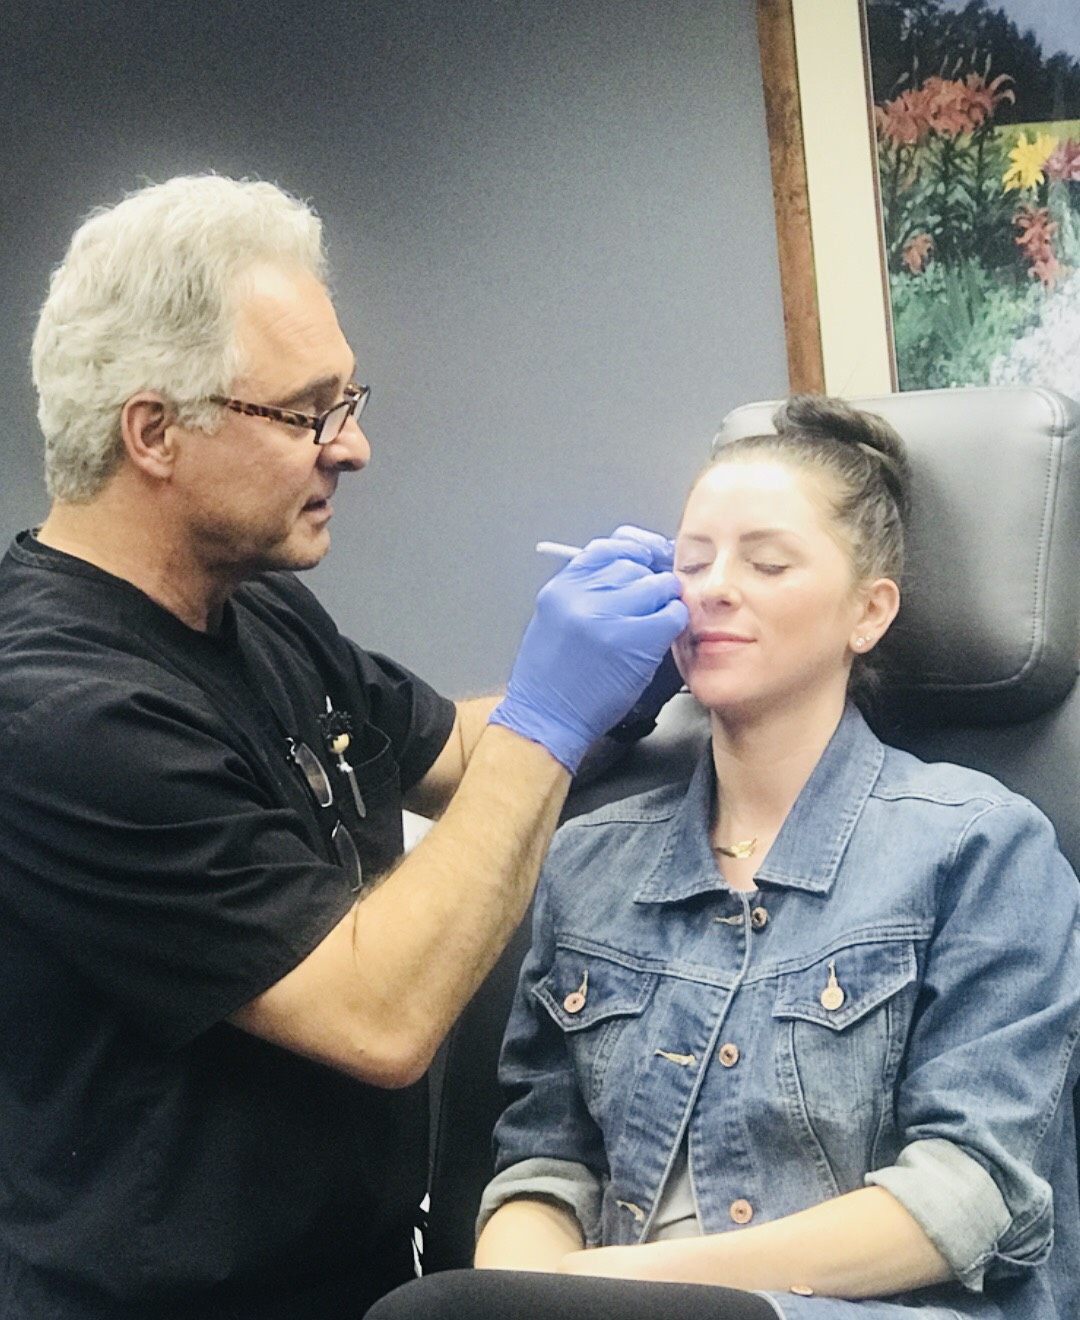 Have questions or heard things about botox? Check out this fun Fact vs. Fiction with Dr. Kovak!